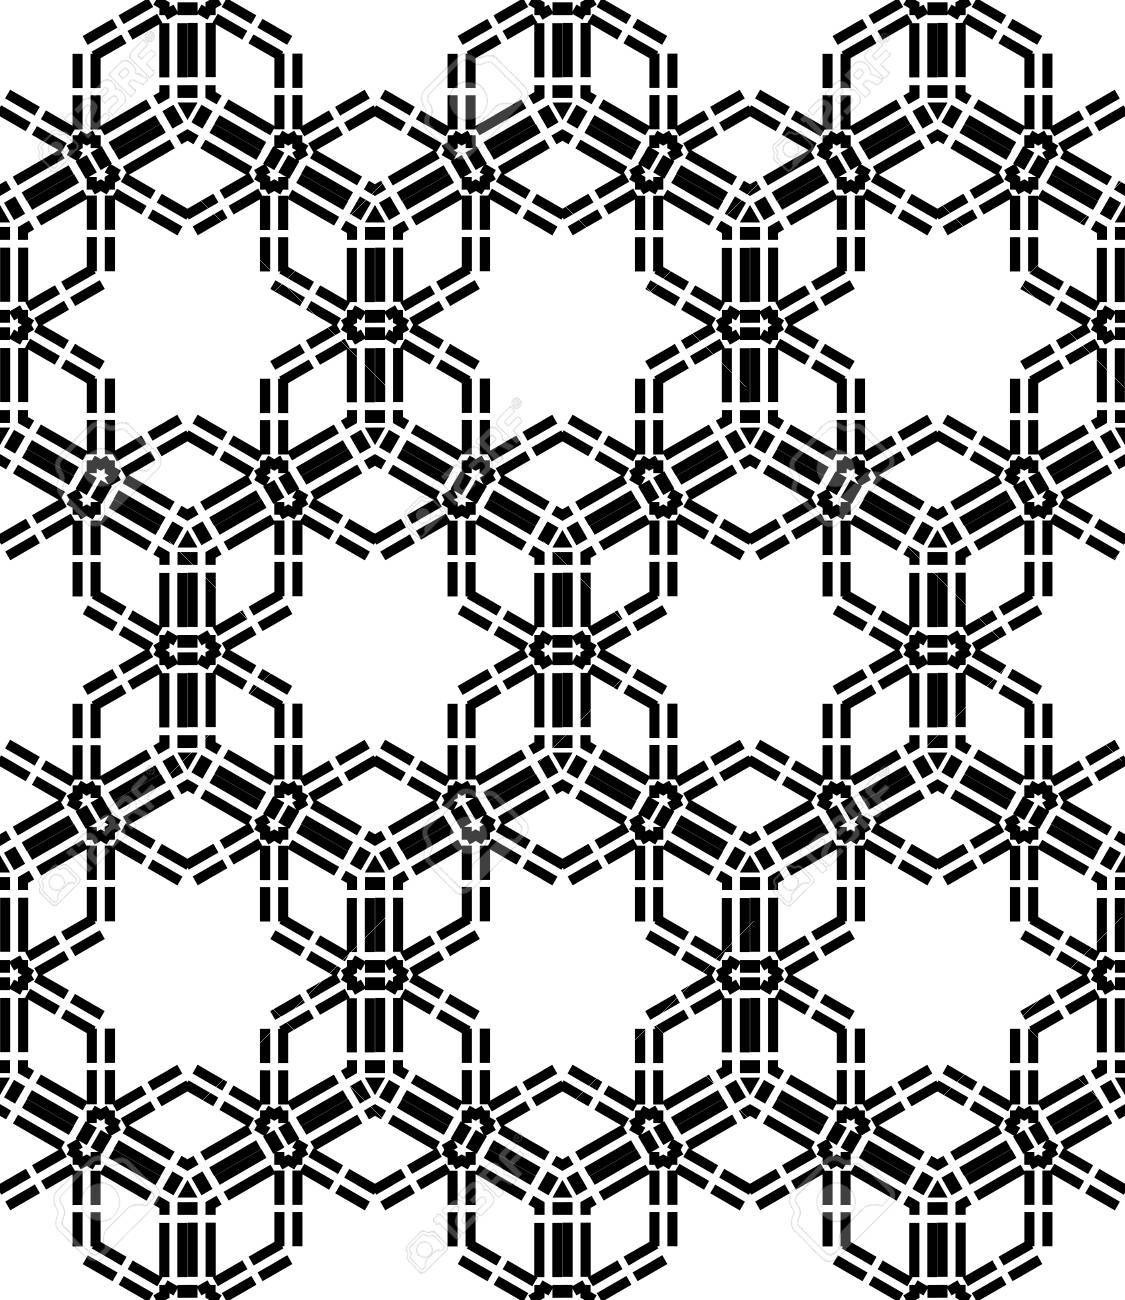 Black bed sheets pattern -  Seamless Pattern Christmas Black And White Textile Print Stylish Background Abstract Texture Monochrome Fashion Design Bed Sheets Or Pillow Pattern